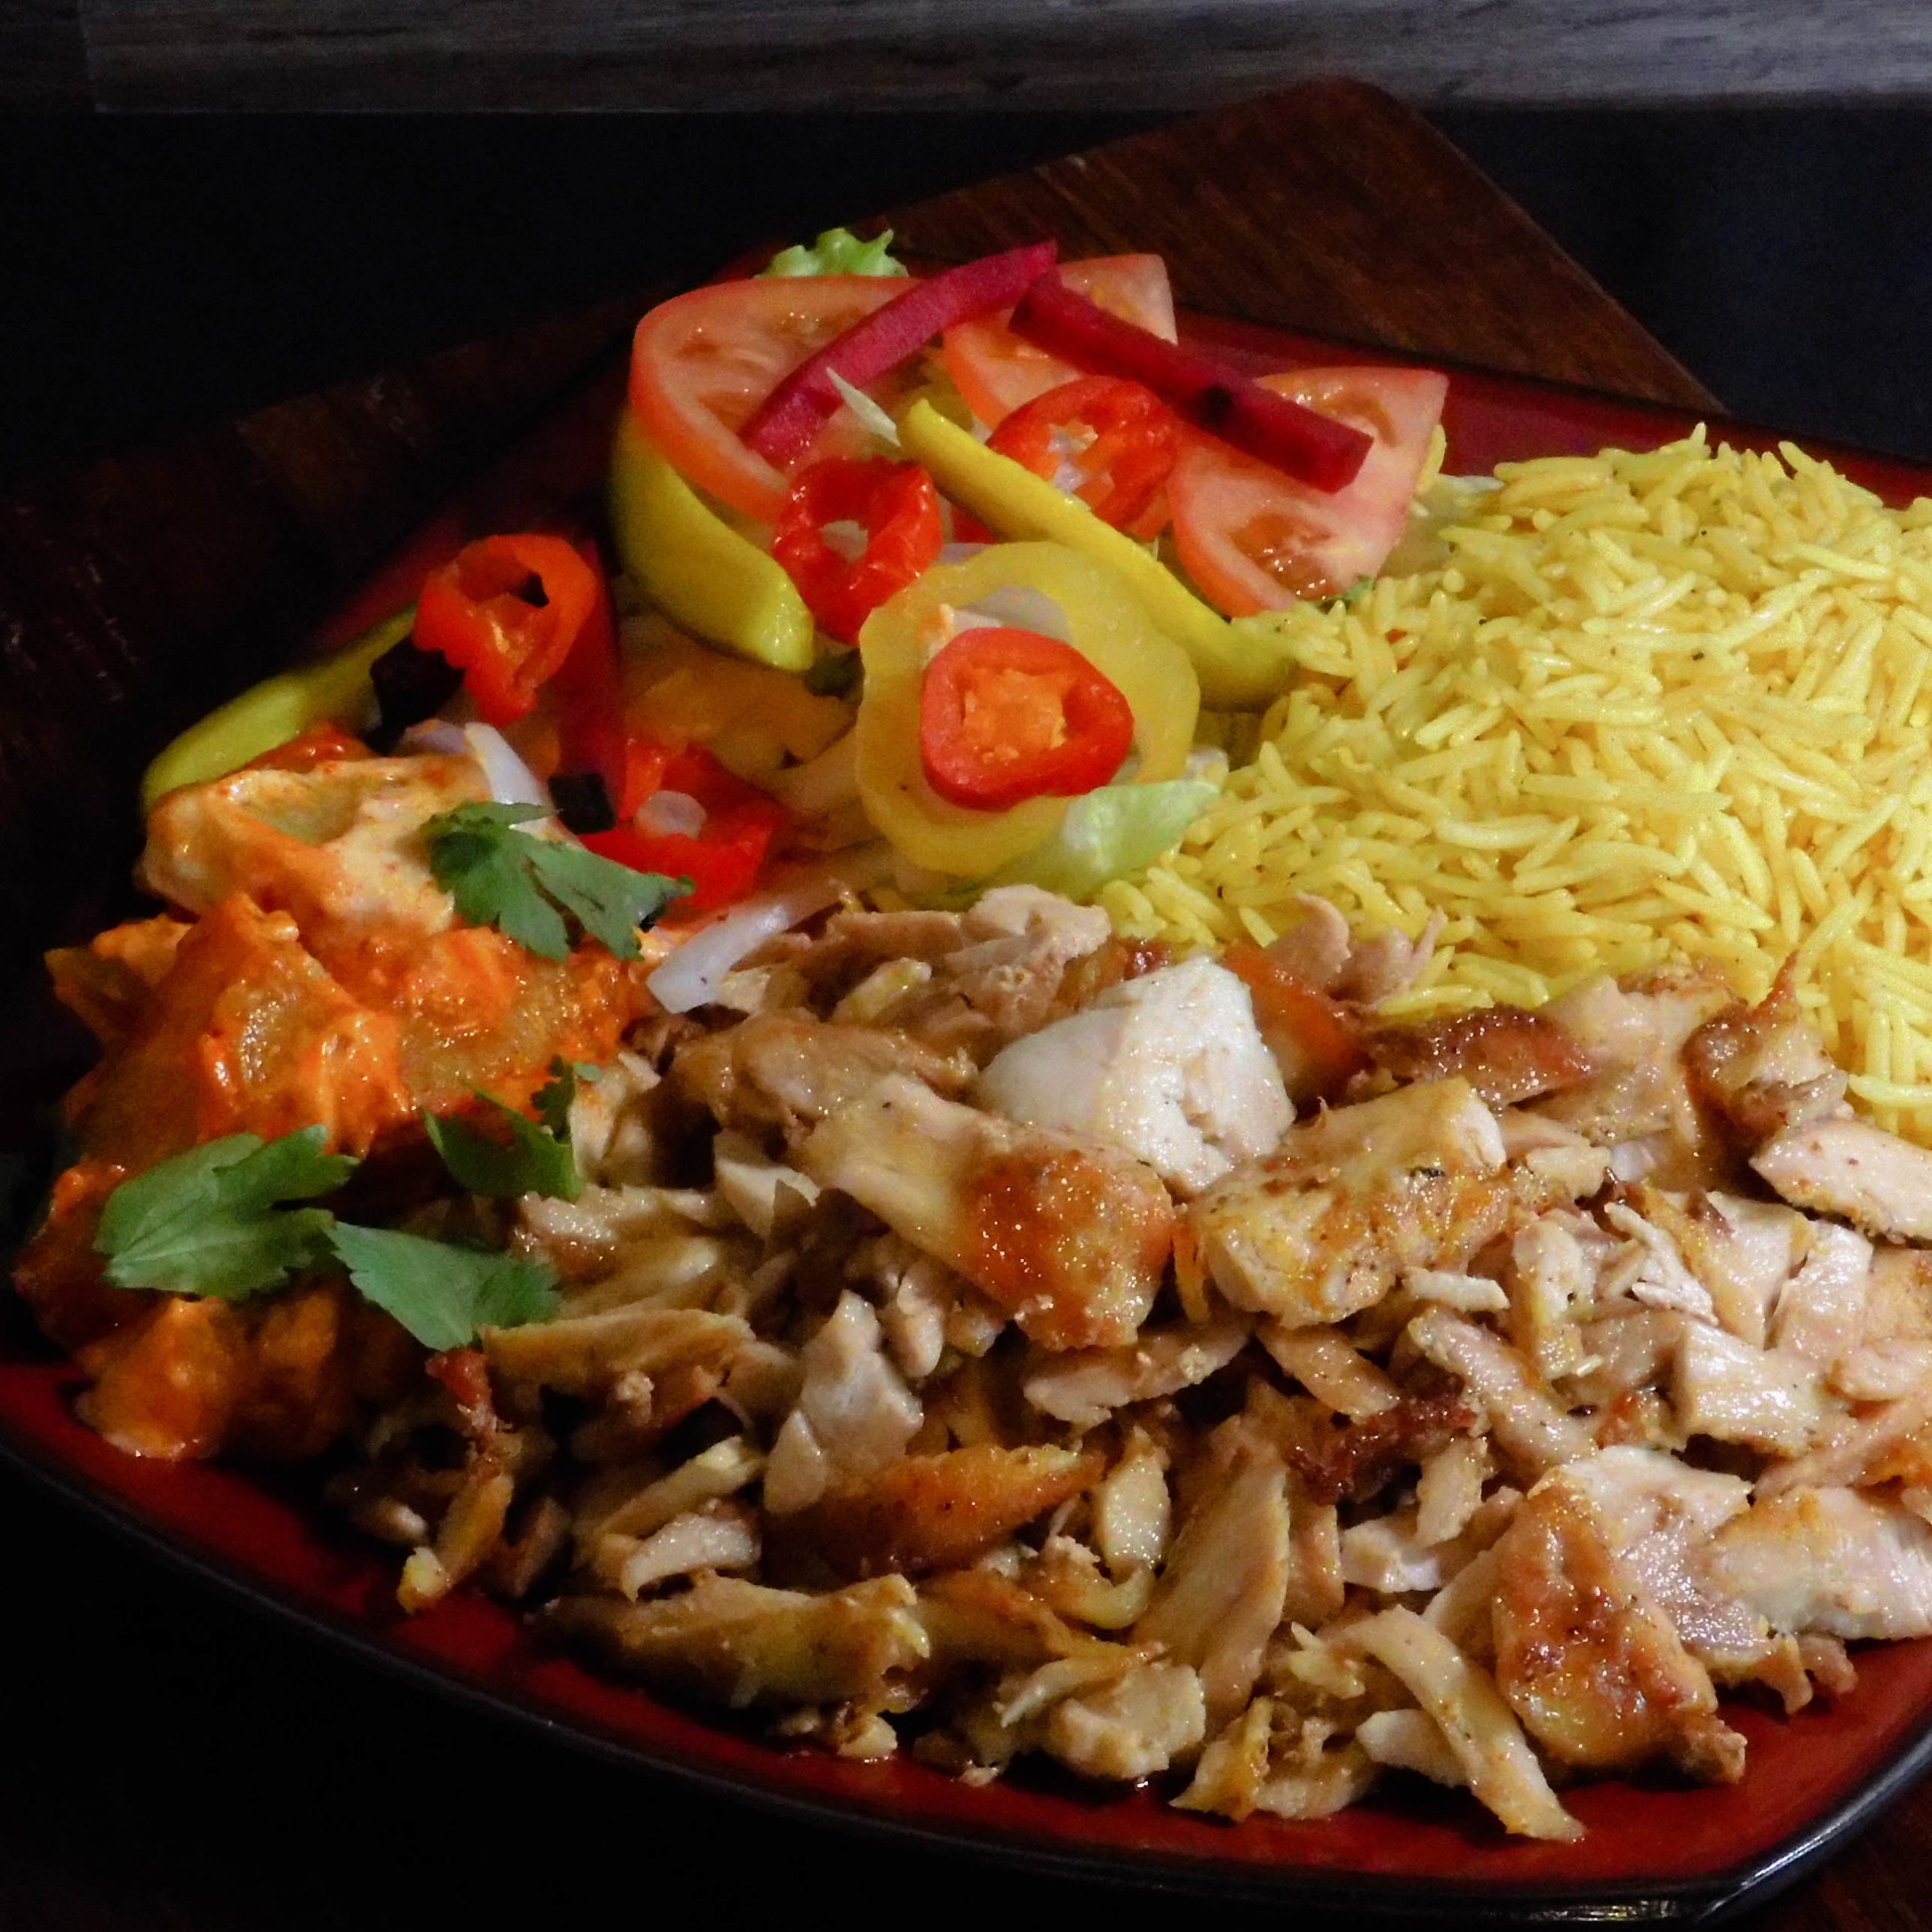 epic pita chicken shawarma plate rice grilled vegetables